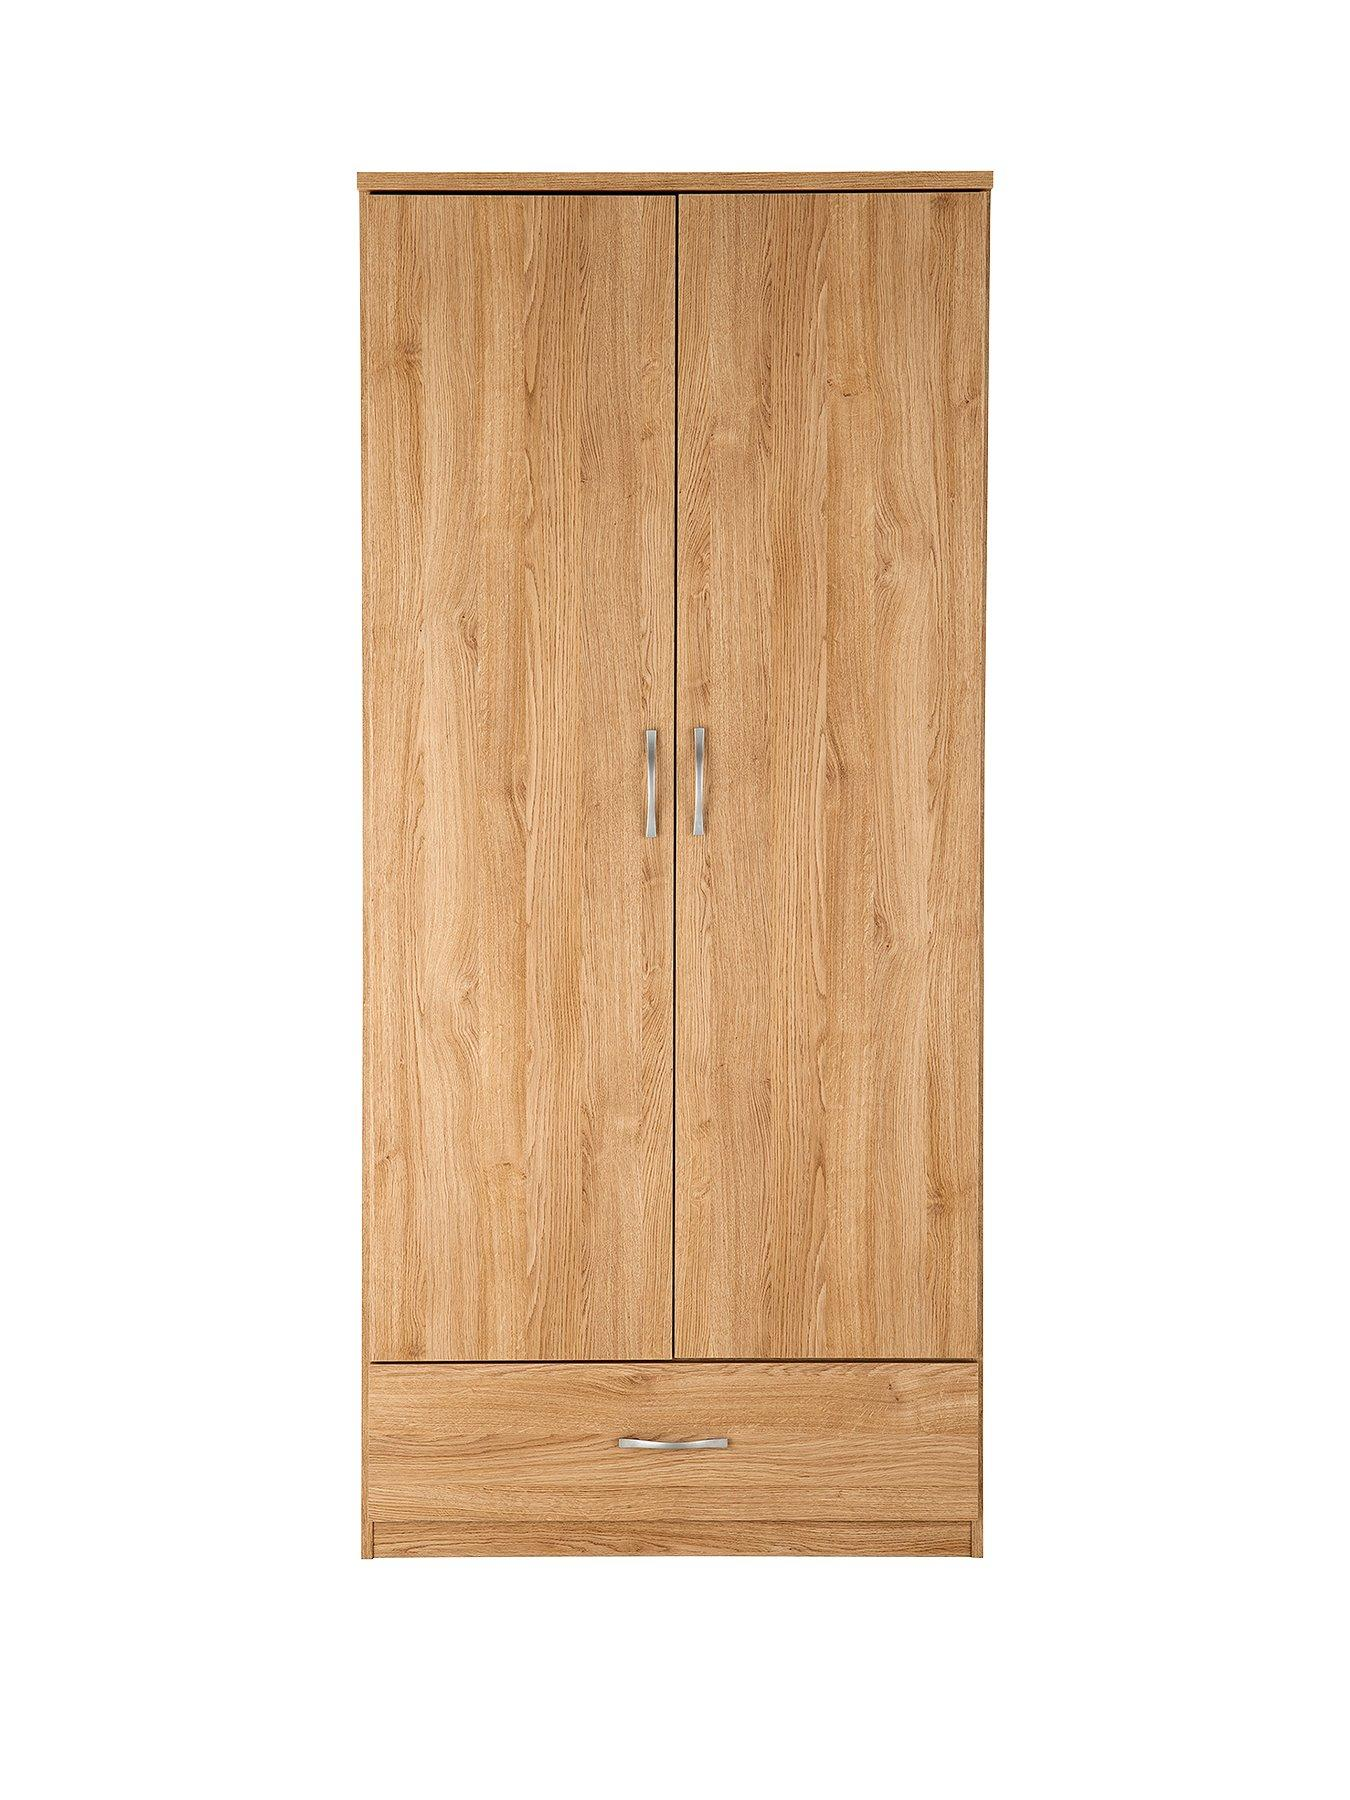 Furniture Bedroom Furniture Cupboard Moderate Price 2 Door Double Wardrobe Mohogany Effect